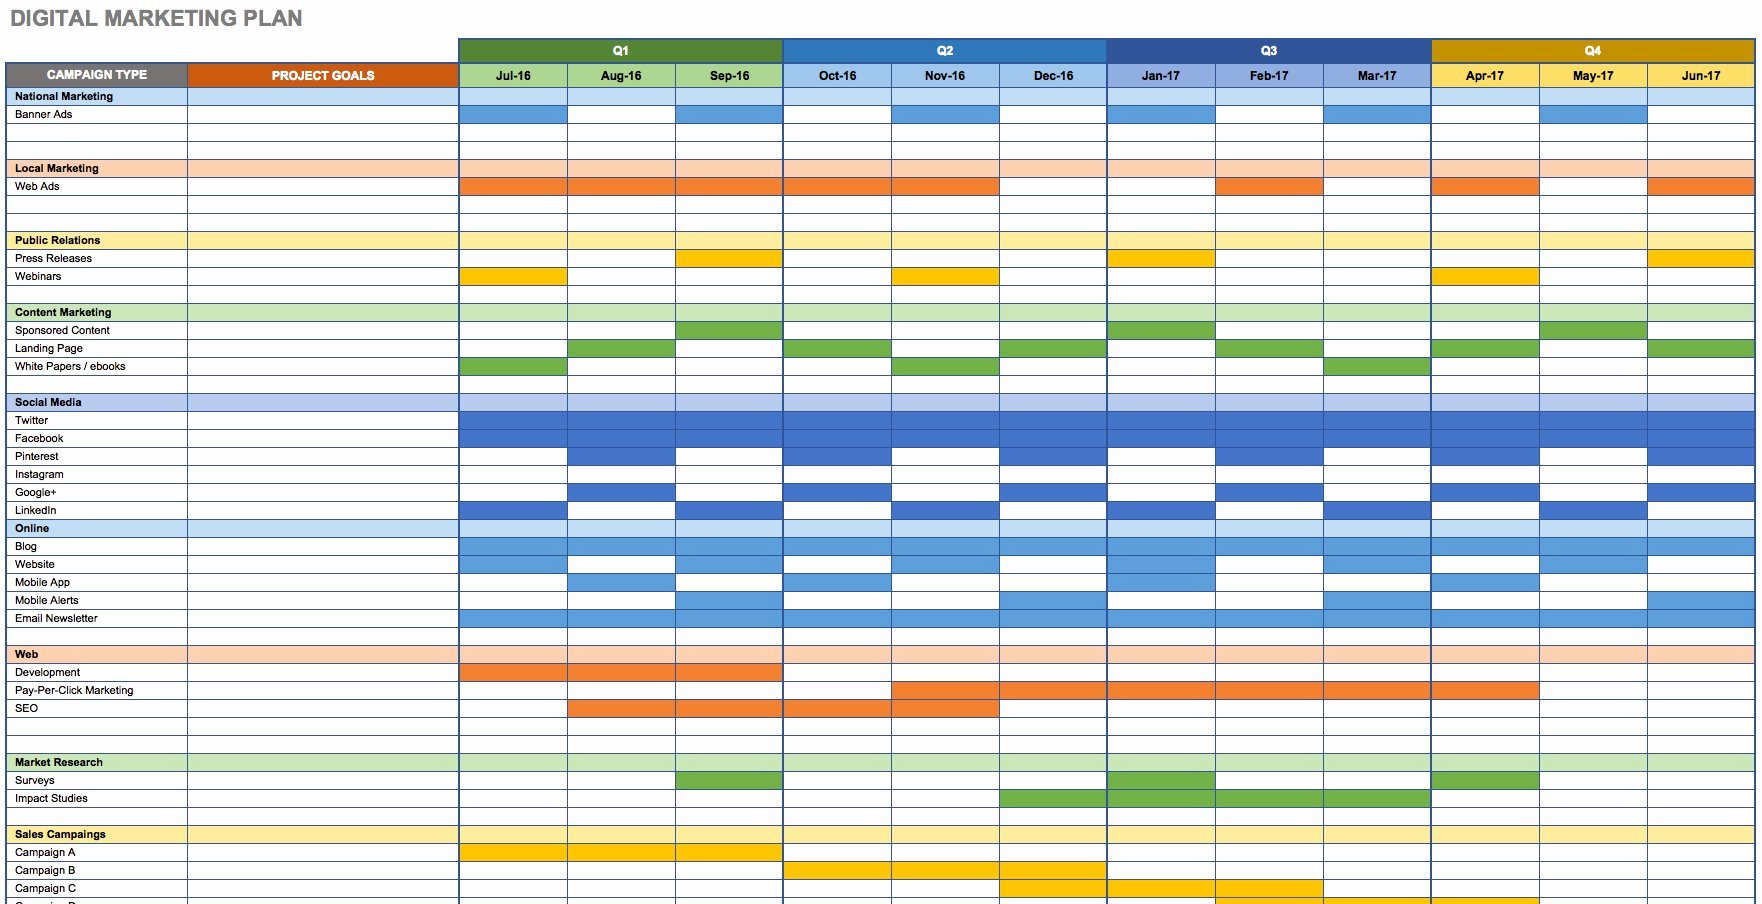 Excel Marketing Plan Template New Free Marketing Plan Templates for Excel Smartsheet